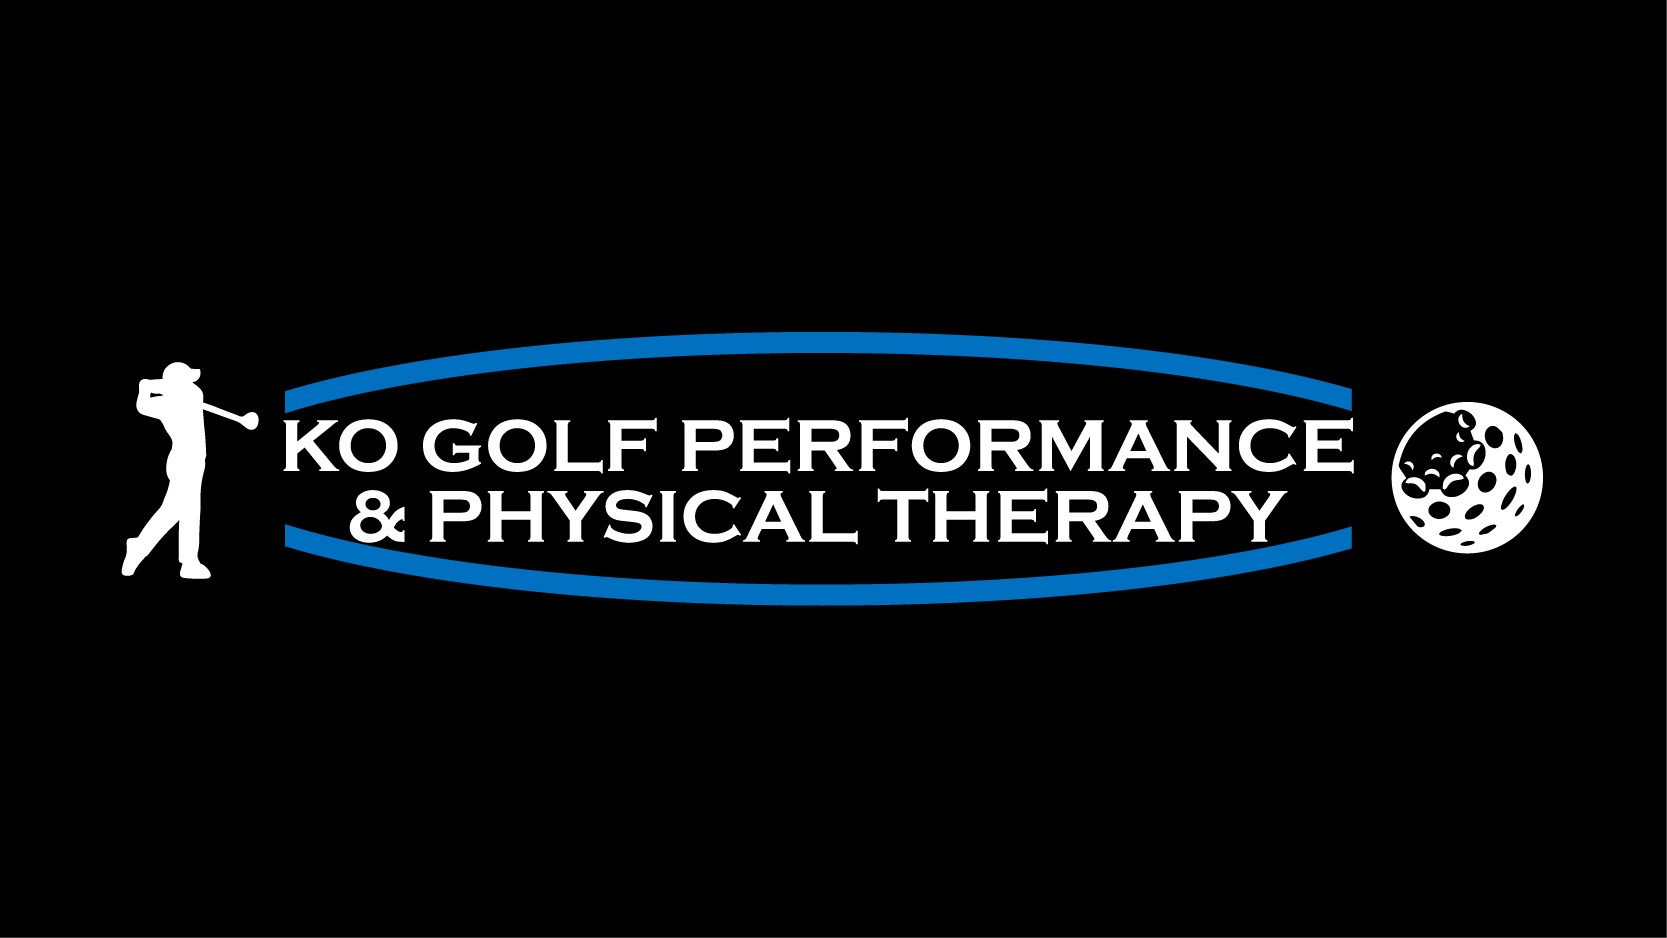 KO Golf Performance and Physical Therapy